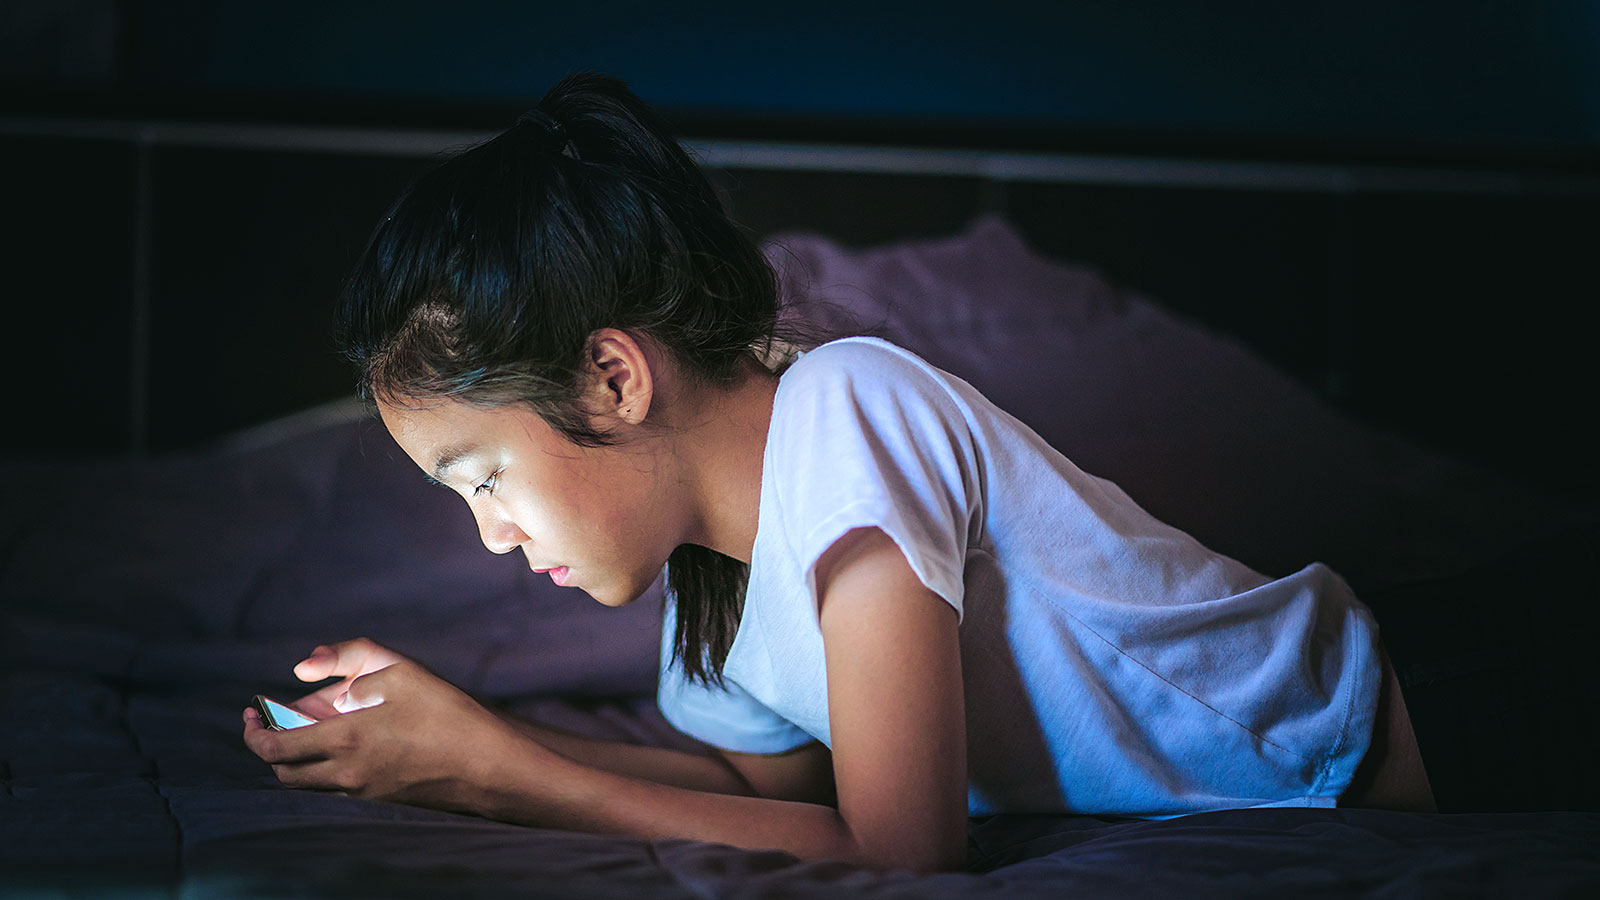 Does blue light actually affect how we sleep?